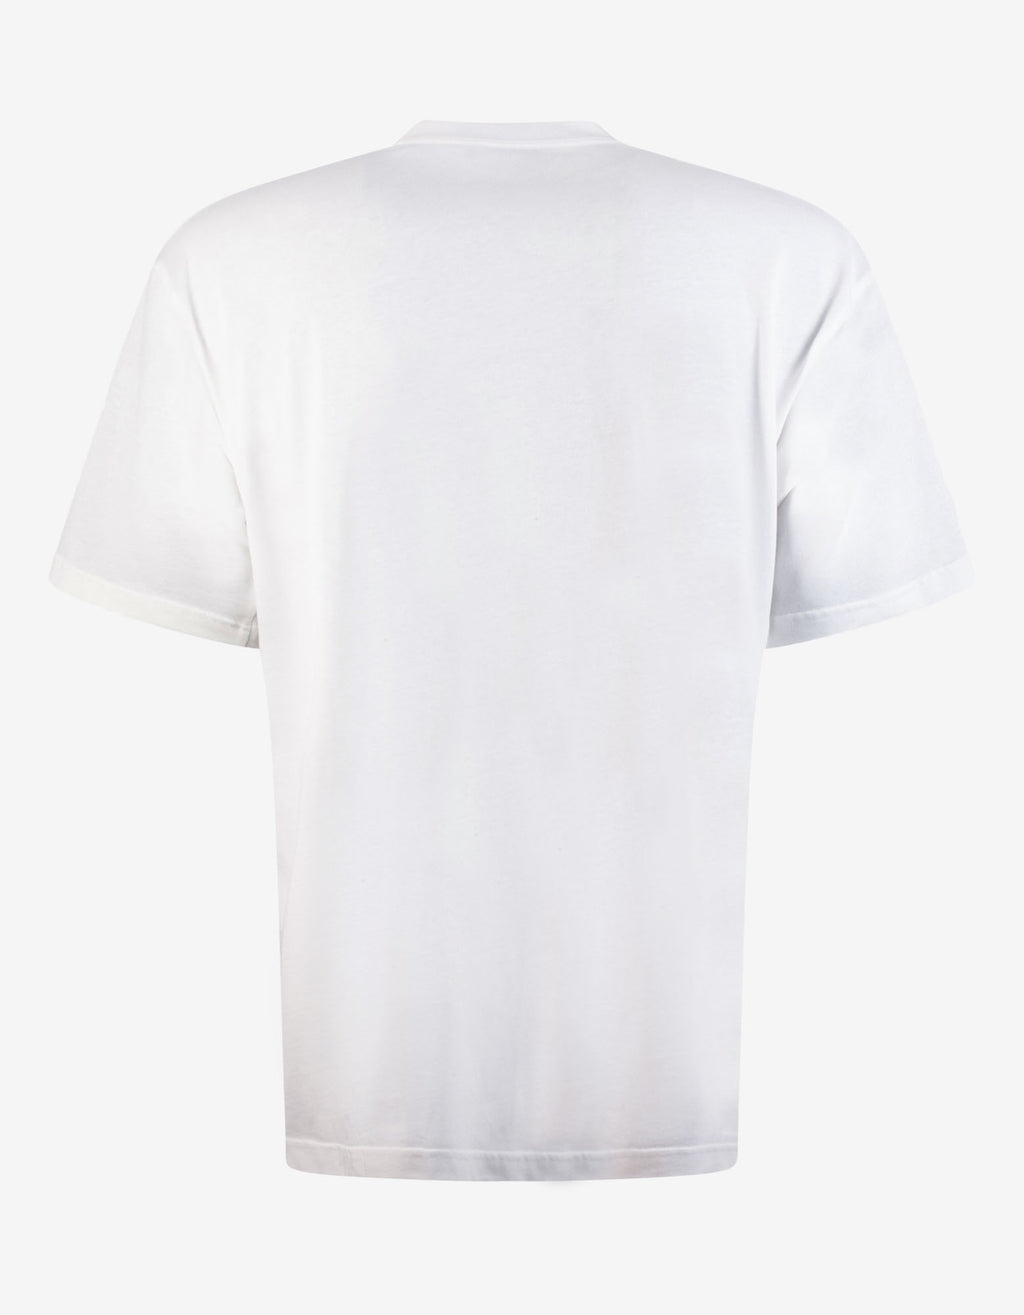 White Uniform Large Fit T-Shirt